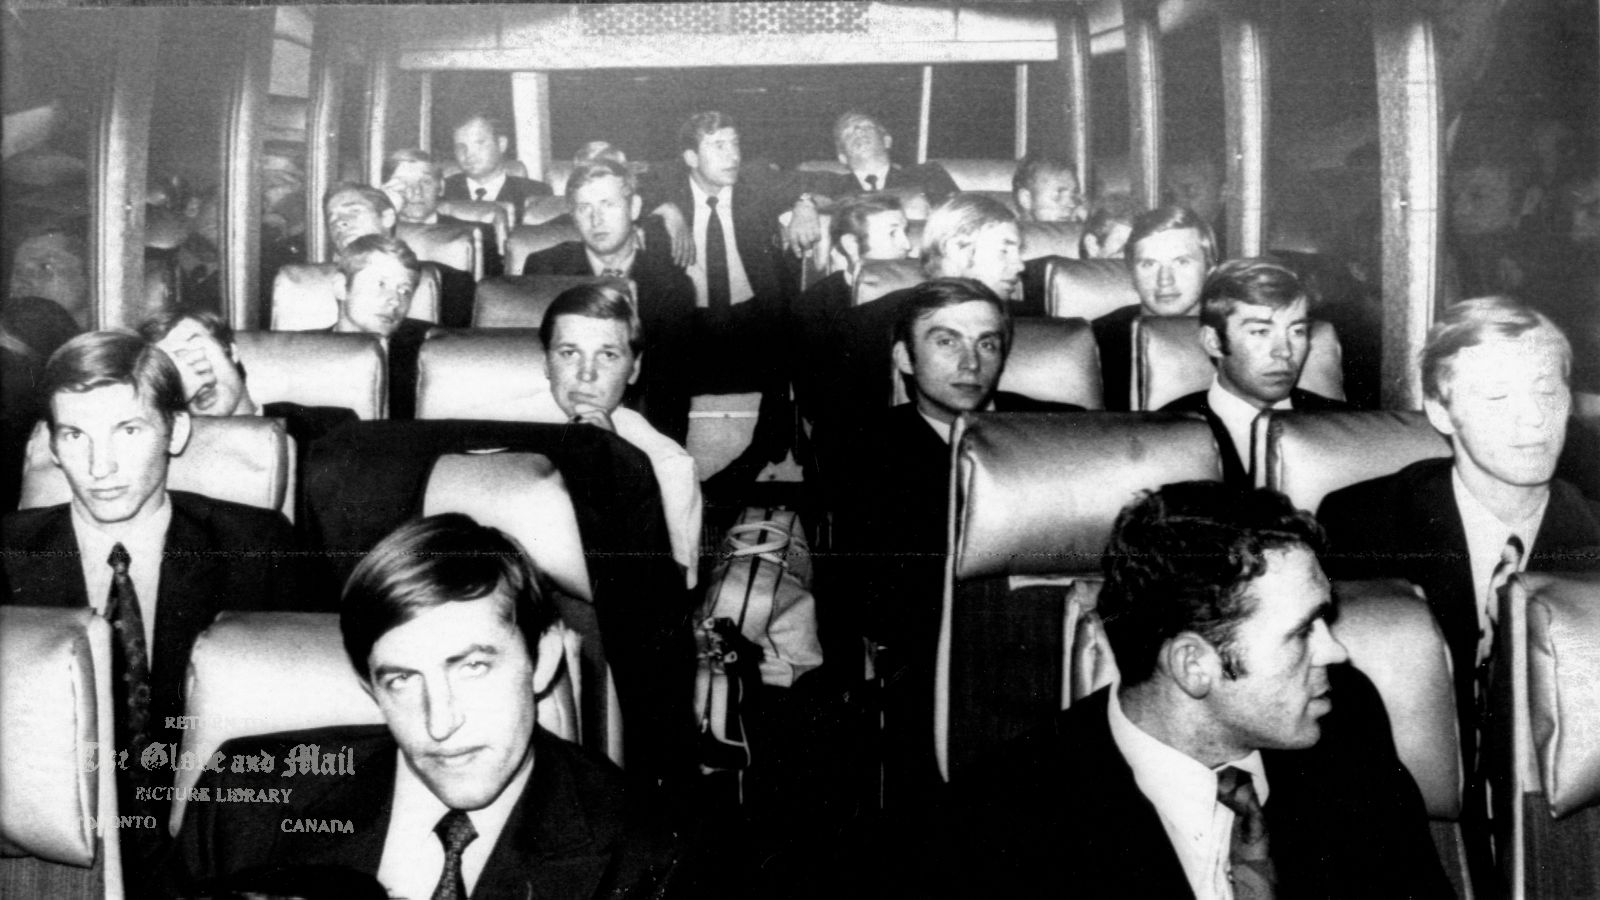 AUGUST 30, 1972 -- MONTREAL -- RUSSIAN HOCKEY PLAYERS ARRIVE -- Members of the Russian National Hockey Team ride a bus from Montreal International Airport Wednesday night, August 30, 1972, after arriving on a regular Aeroflot flight from Moscow. The Russians meet Team Canada for the first time Saturday night, Sept. 2, 1972. CP PHOTO